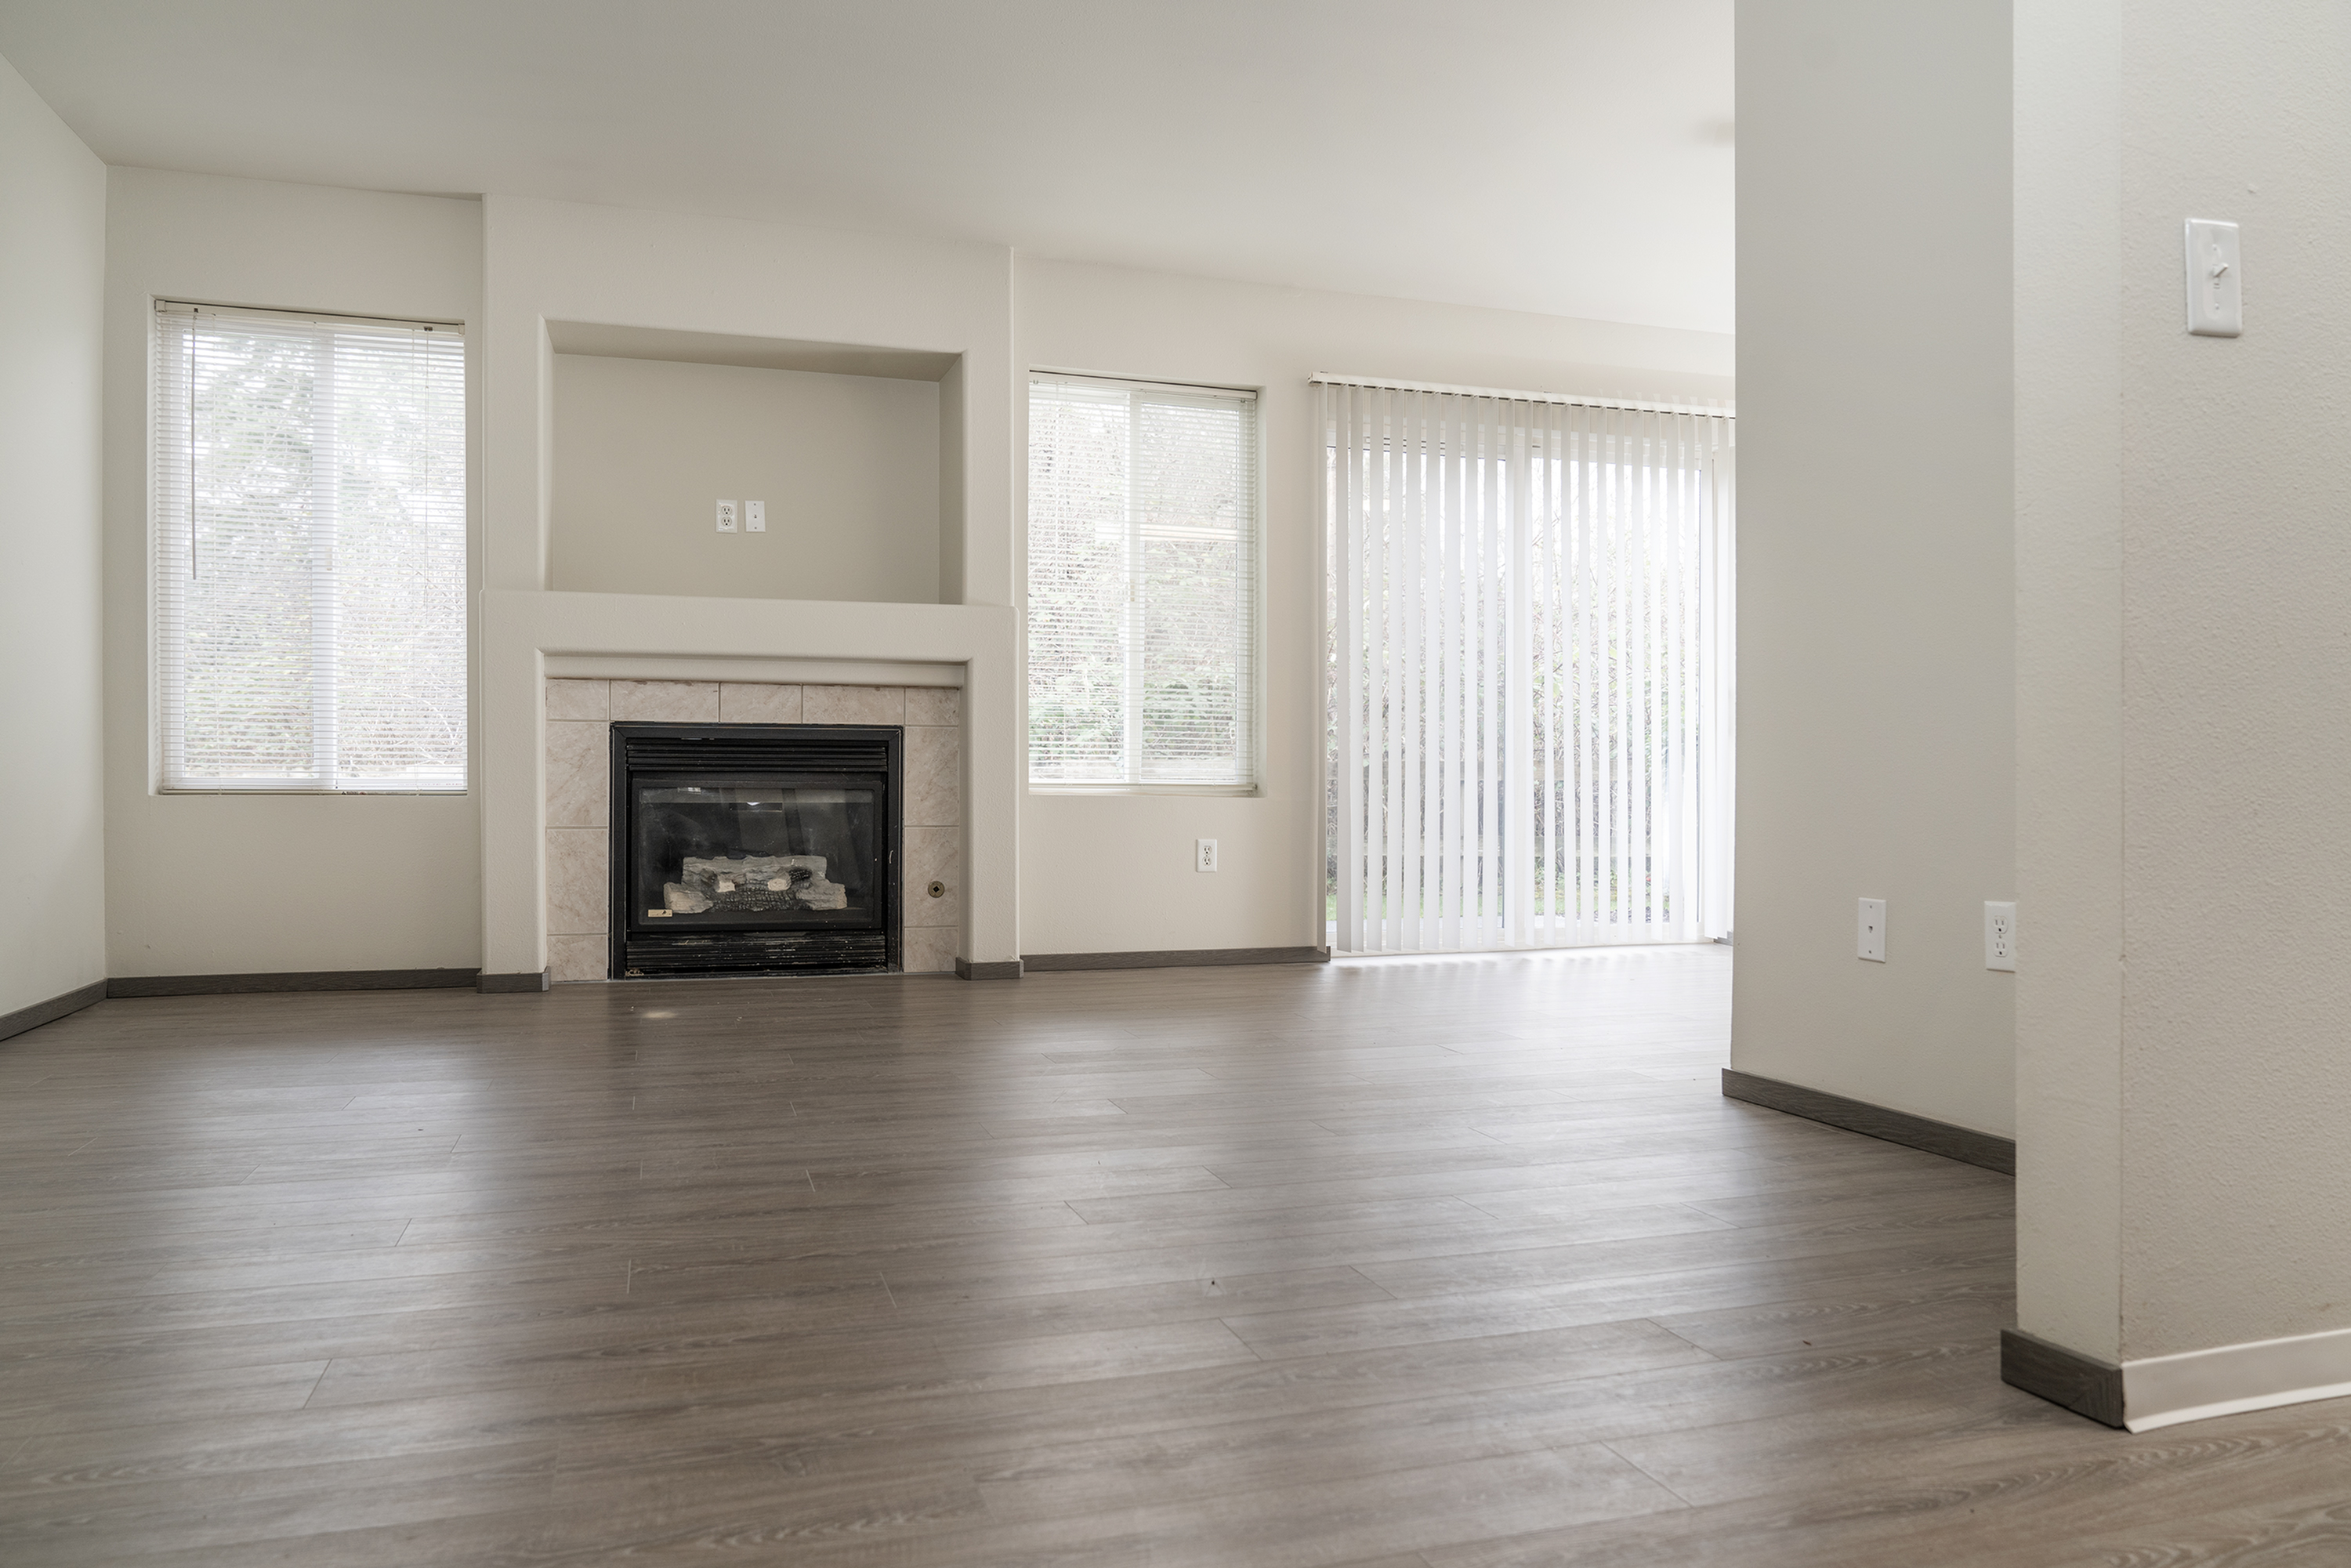 Image of Studio, One, Two, and Three Bedroom Apartments for Nantucket Gate